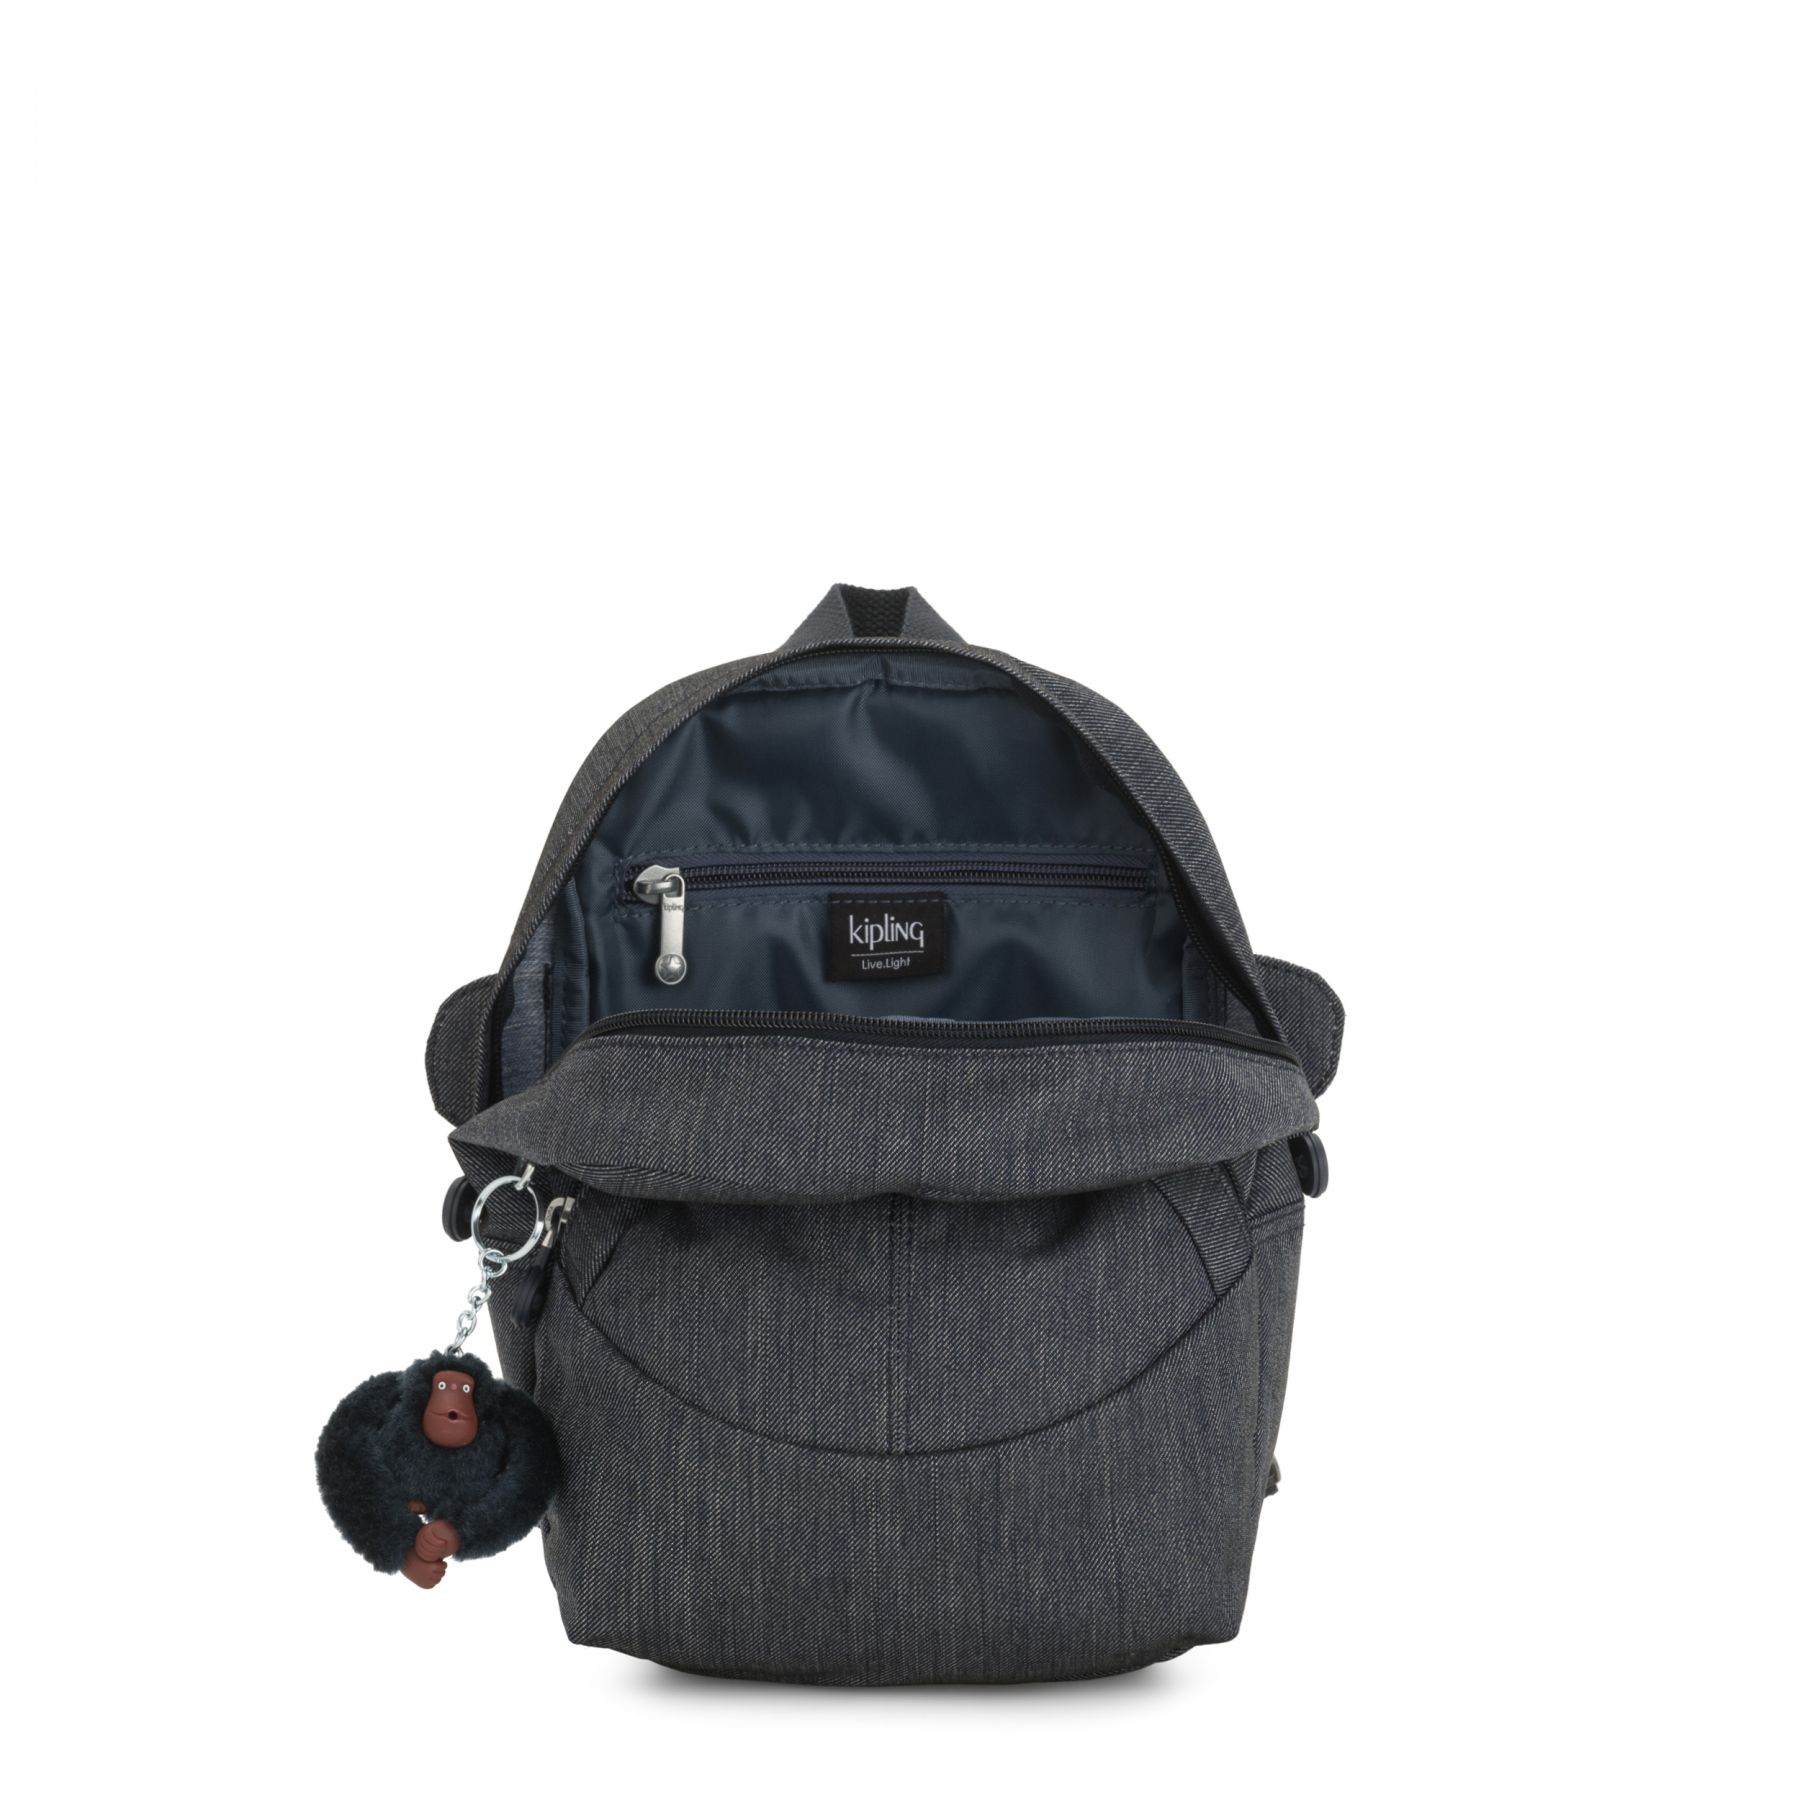 FASTER Latest Backpacks by Kipling - Inside view